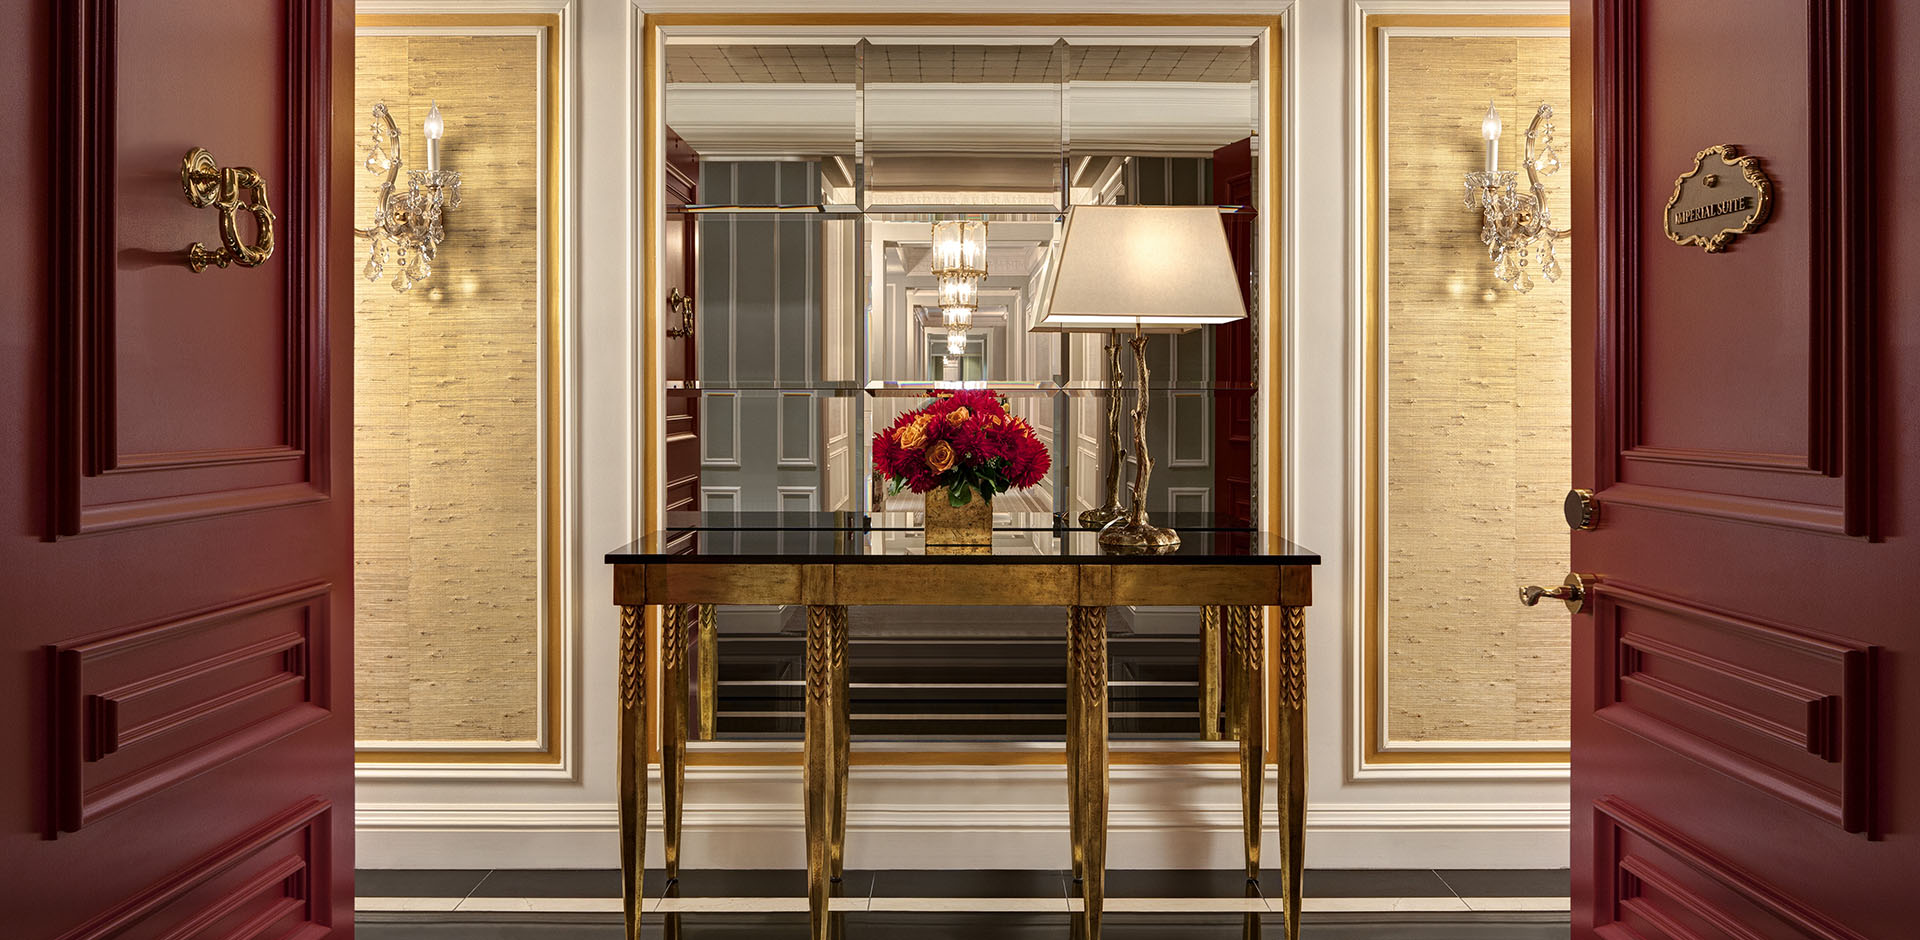 St Regis, New York - Imperial Entrance